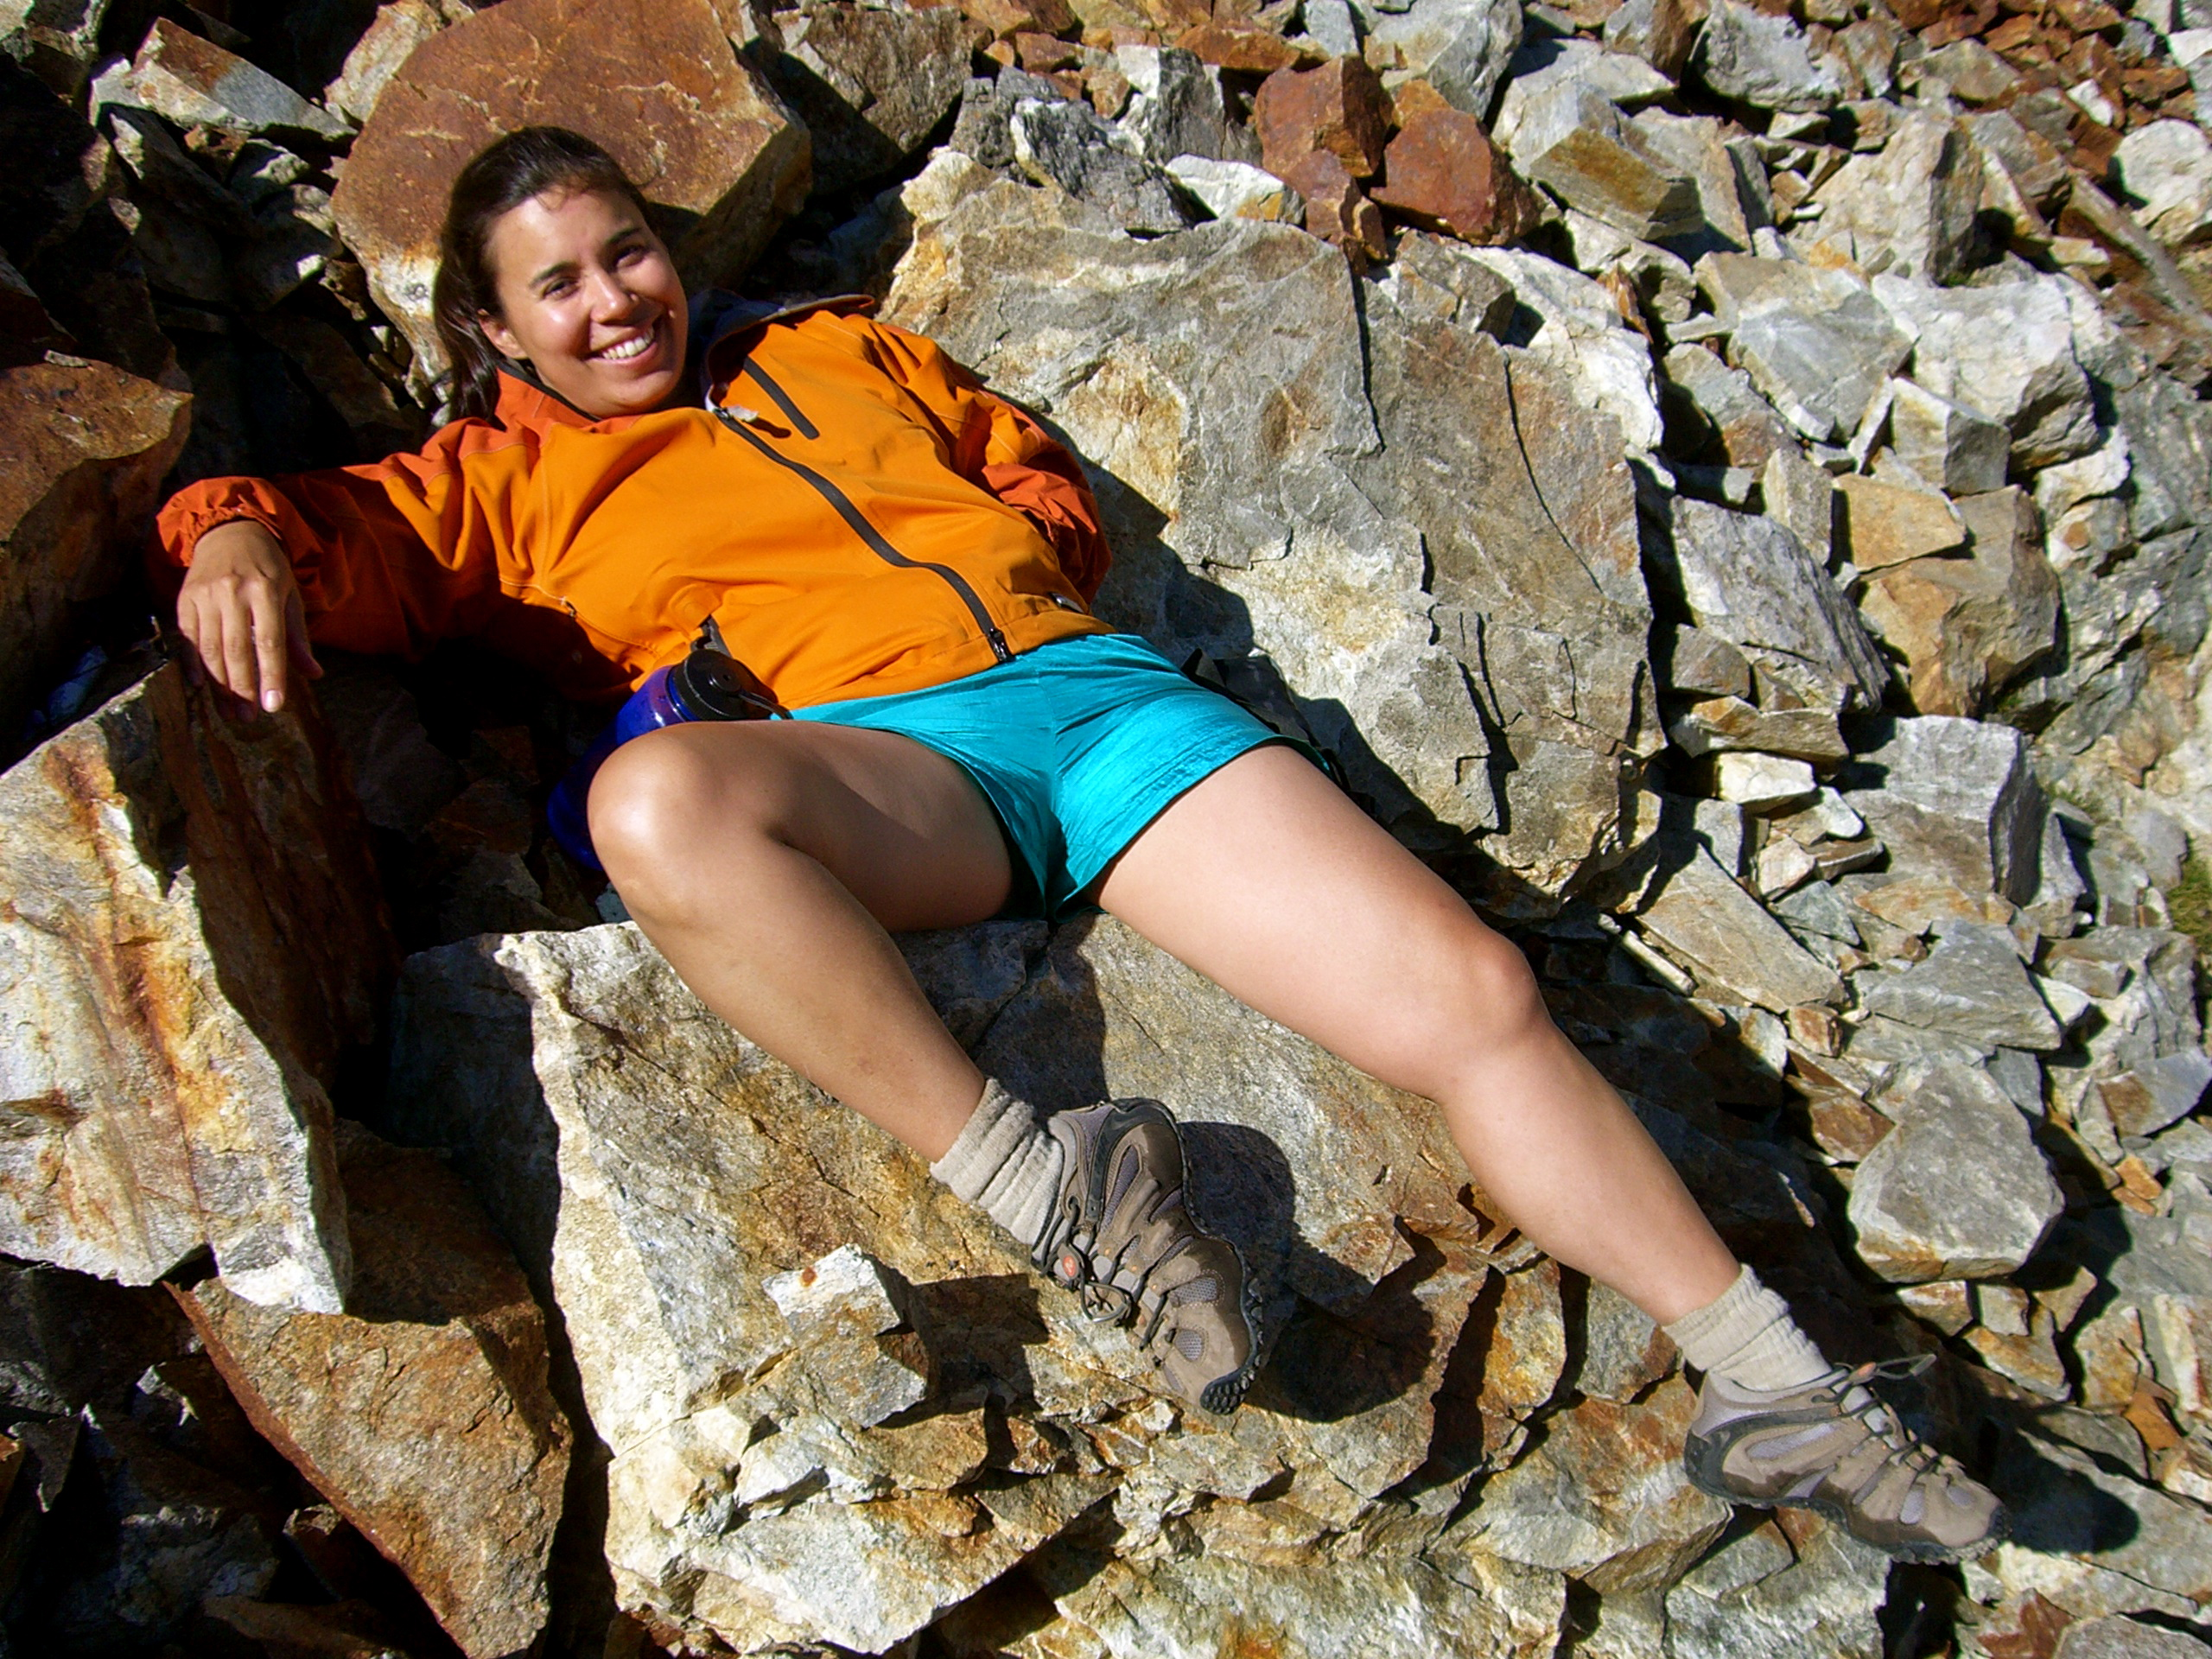 Kristina having a jolly good time enticing William, Spider Pass, East side of Glacier Peak Wilderness, WA. Late August 2006.